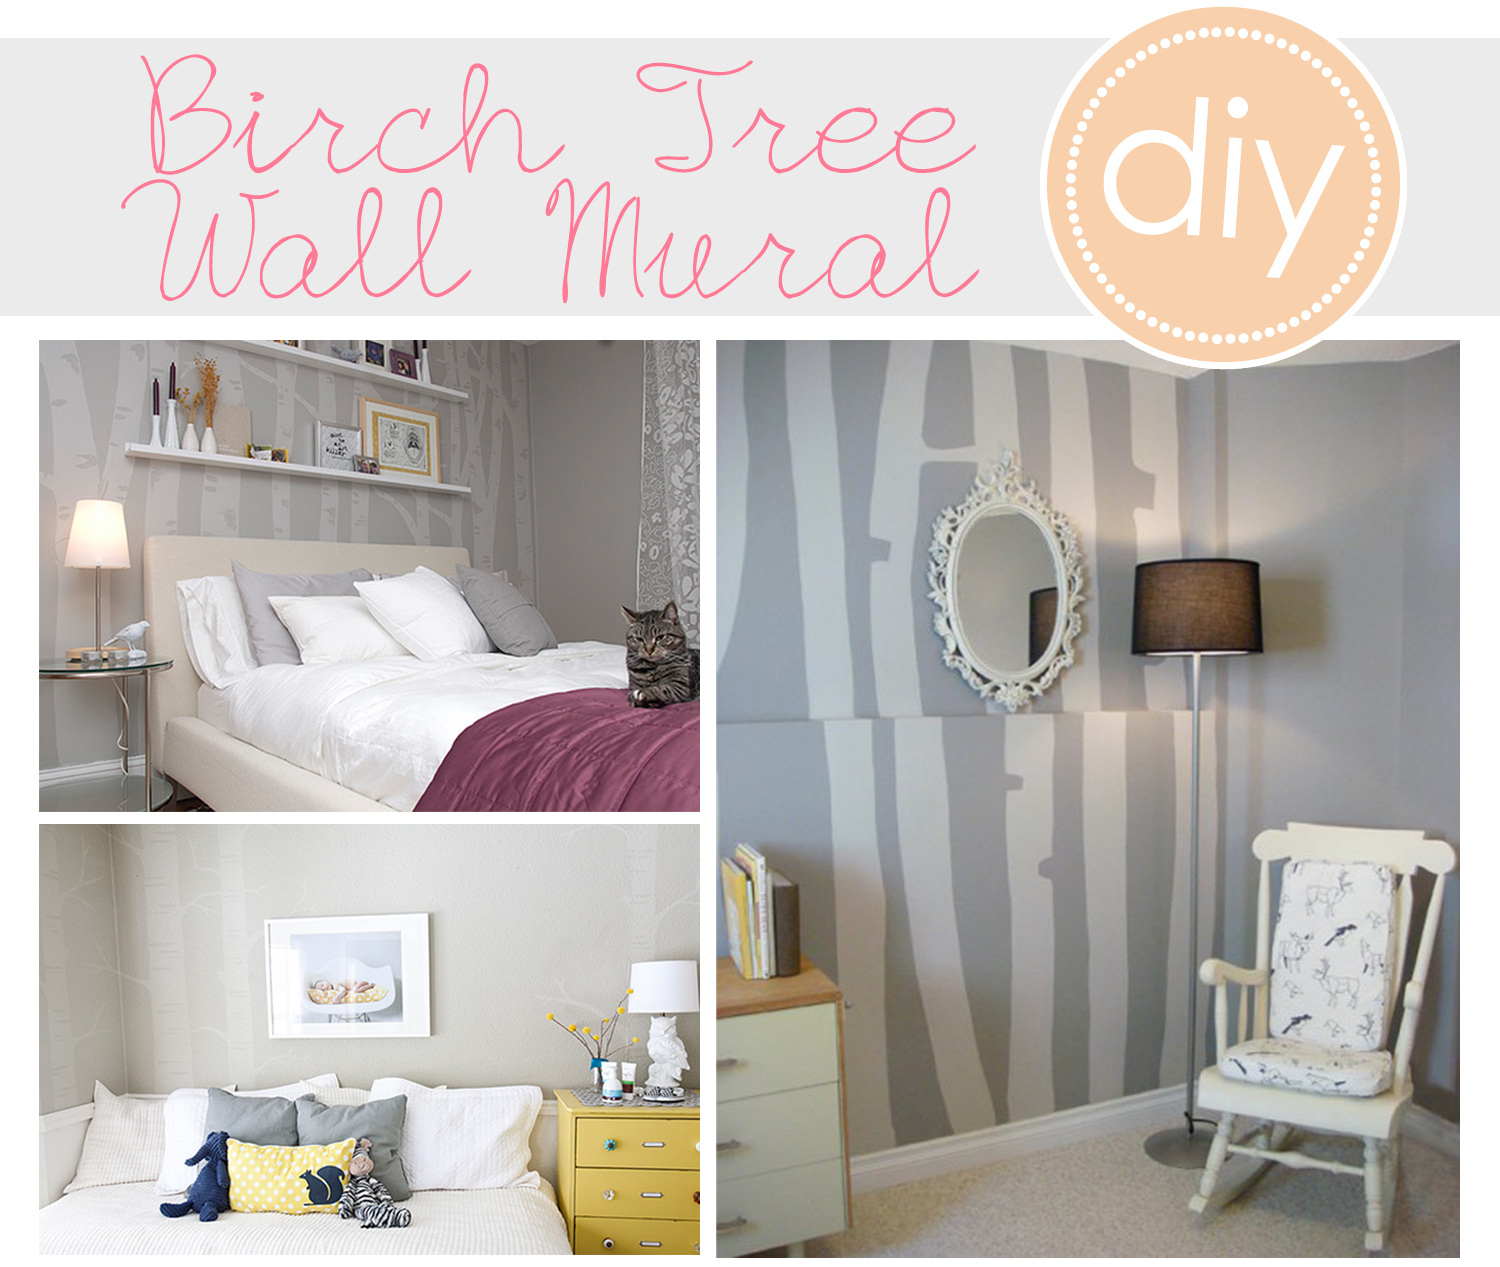 diy trend birch tree wall murals